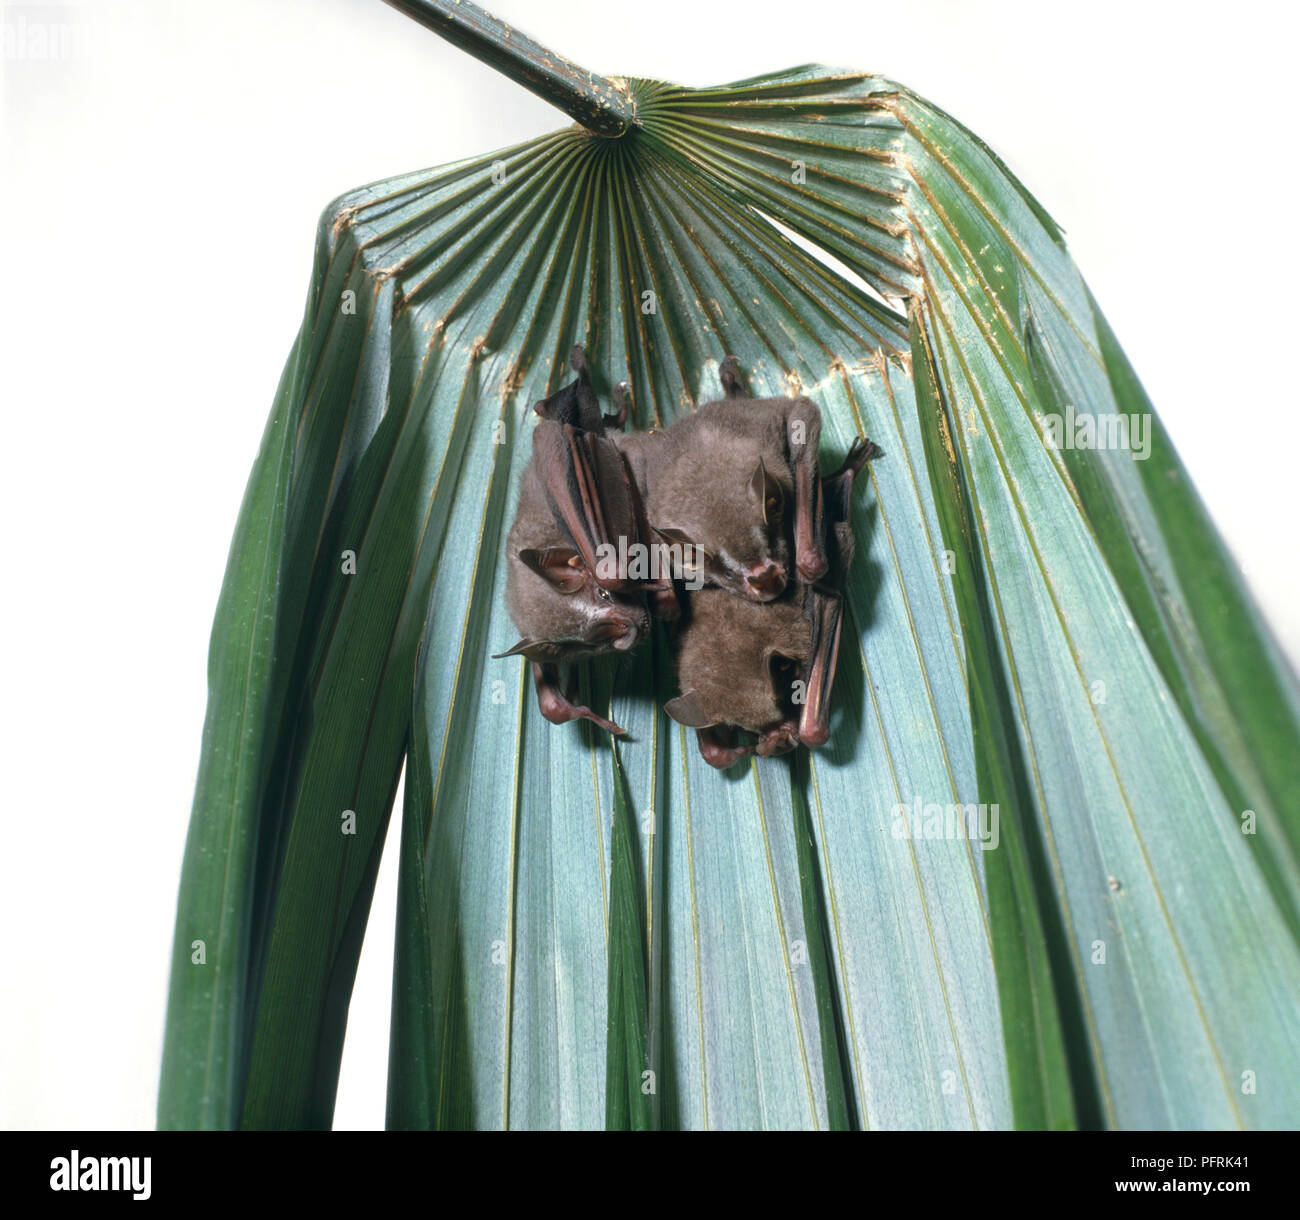 White Tent Bats Stock Photos & White Tent Bats Stock Images - Alamy